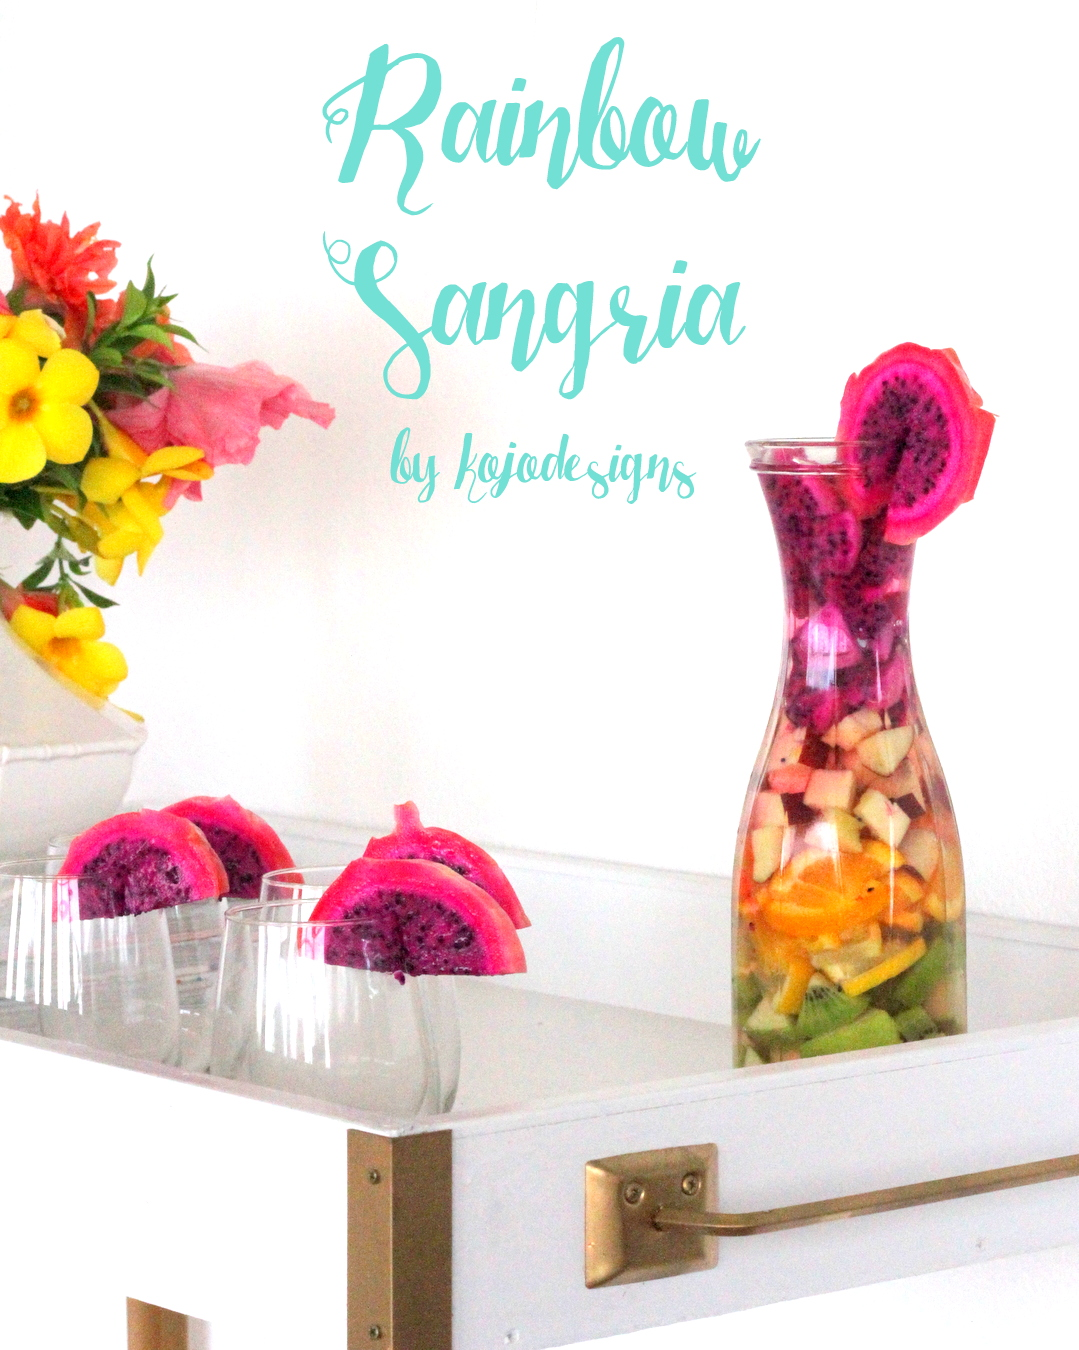 rainbow sangria recipe